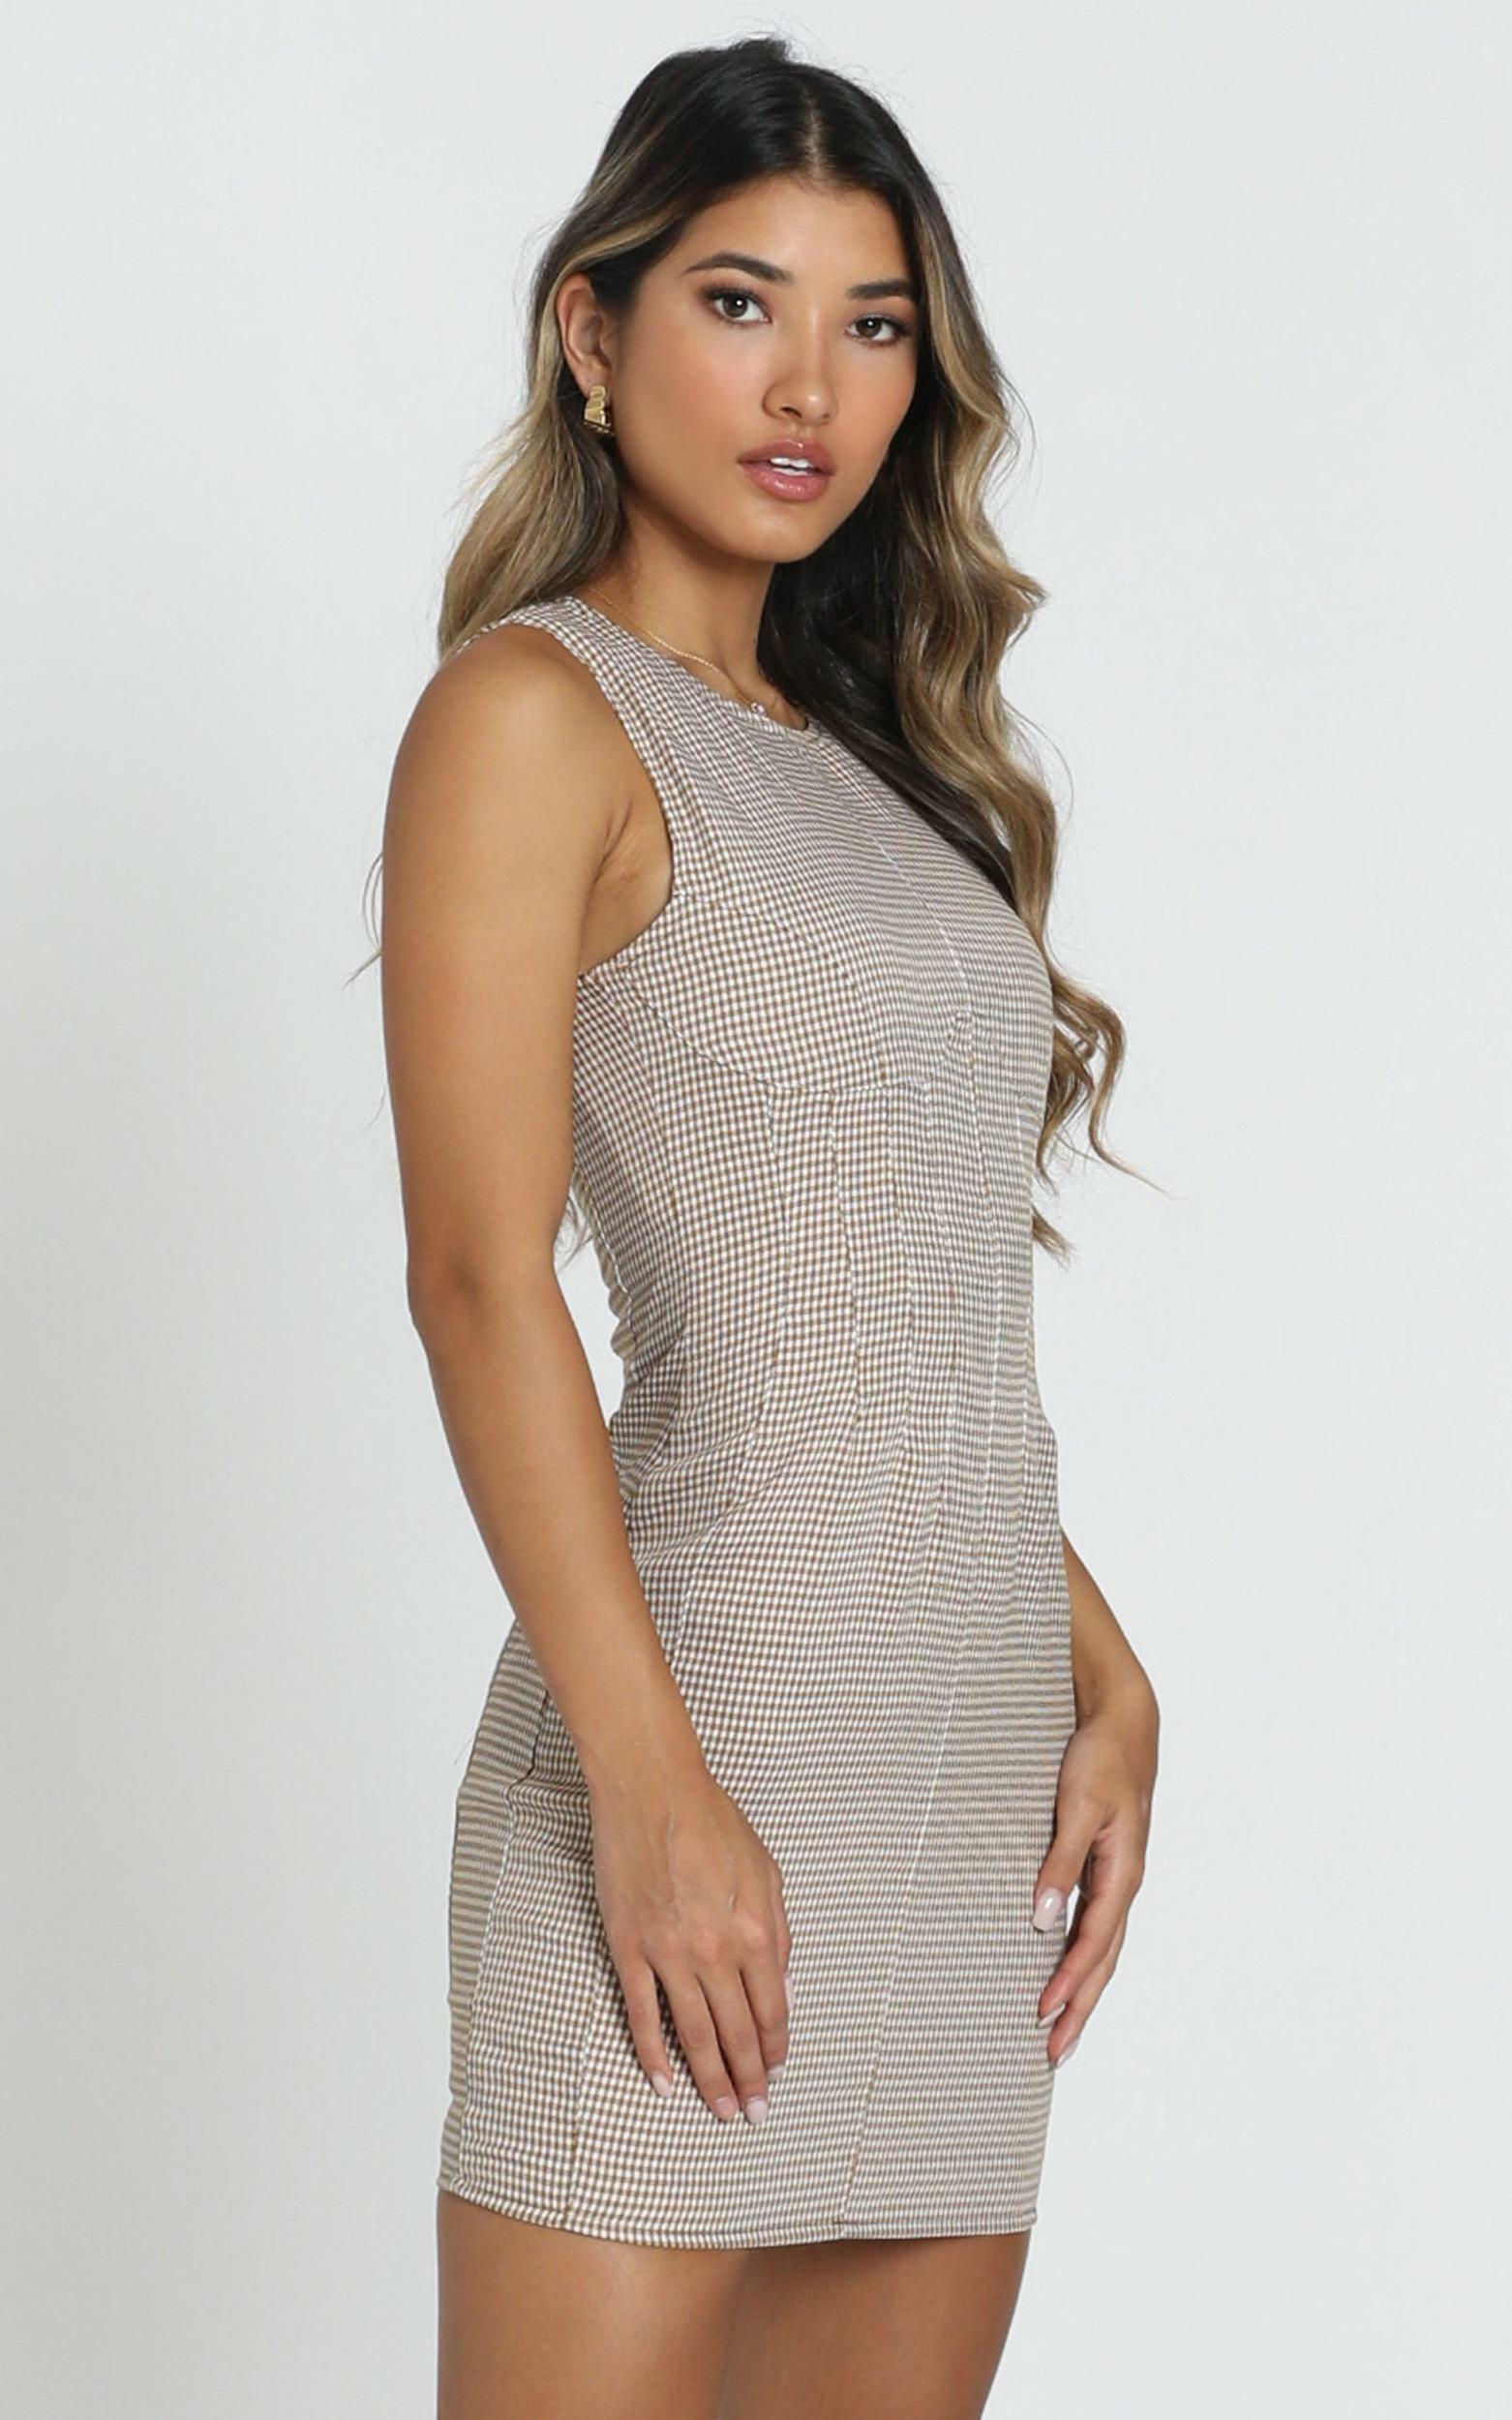 Lioness - Le Chateau Mini Dress in gingham - 12 (L), Mocha, hi-res image number null